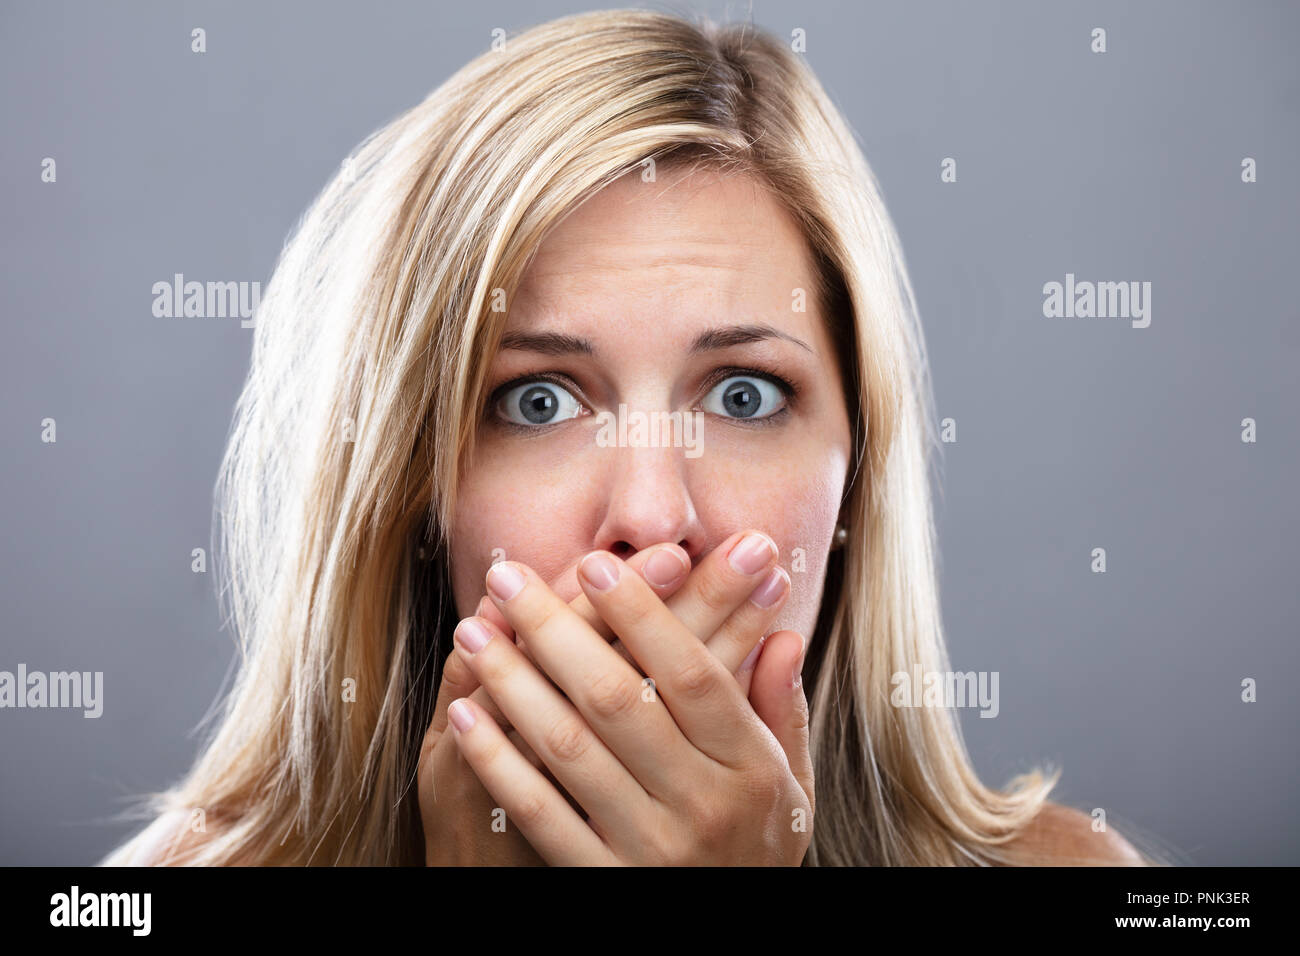 Shocked Woman With Hand On Mouth Over Grey Background - Stock Image